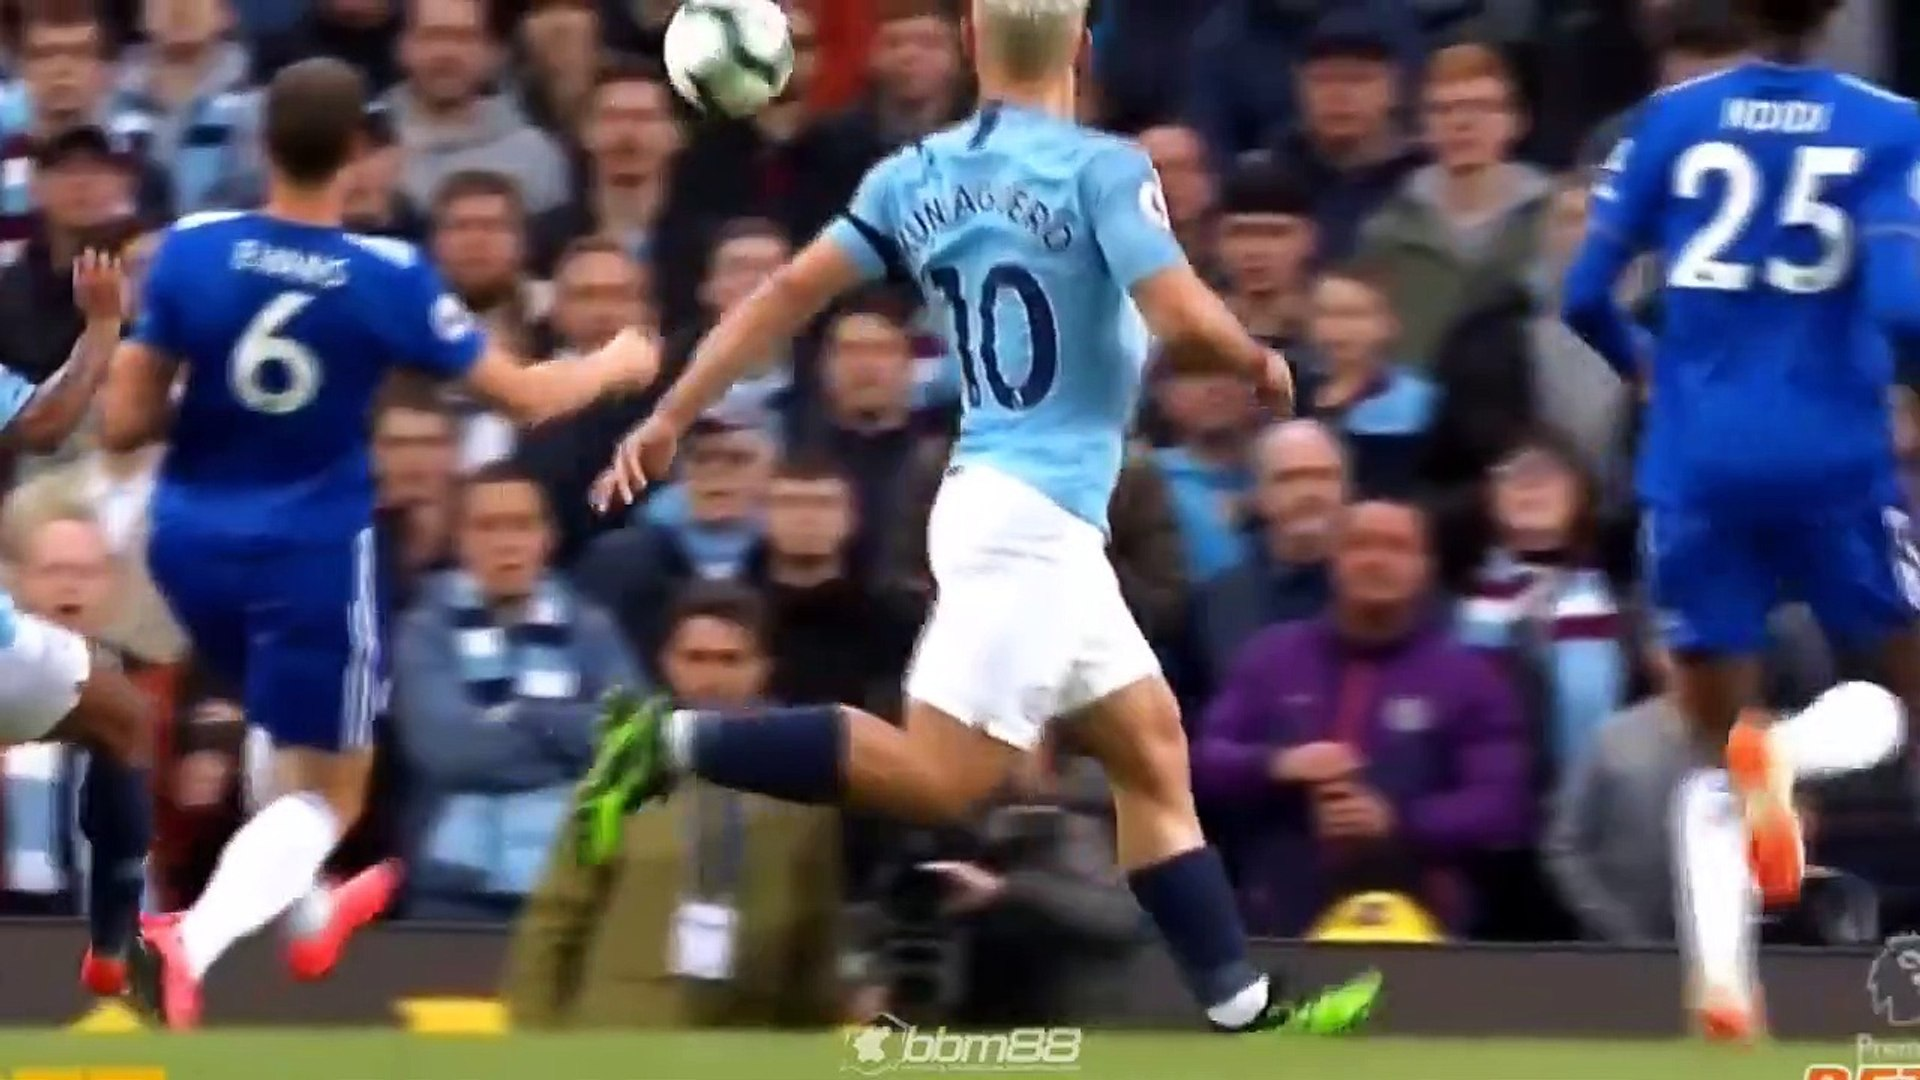 Manchester city vs Leicester city 1-0 highlights 06/05/2019